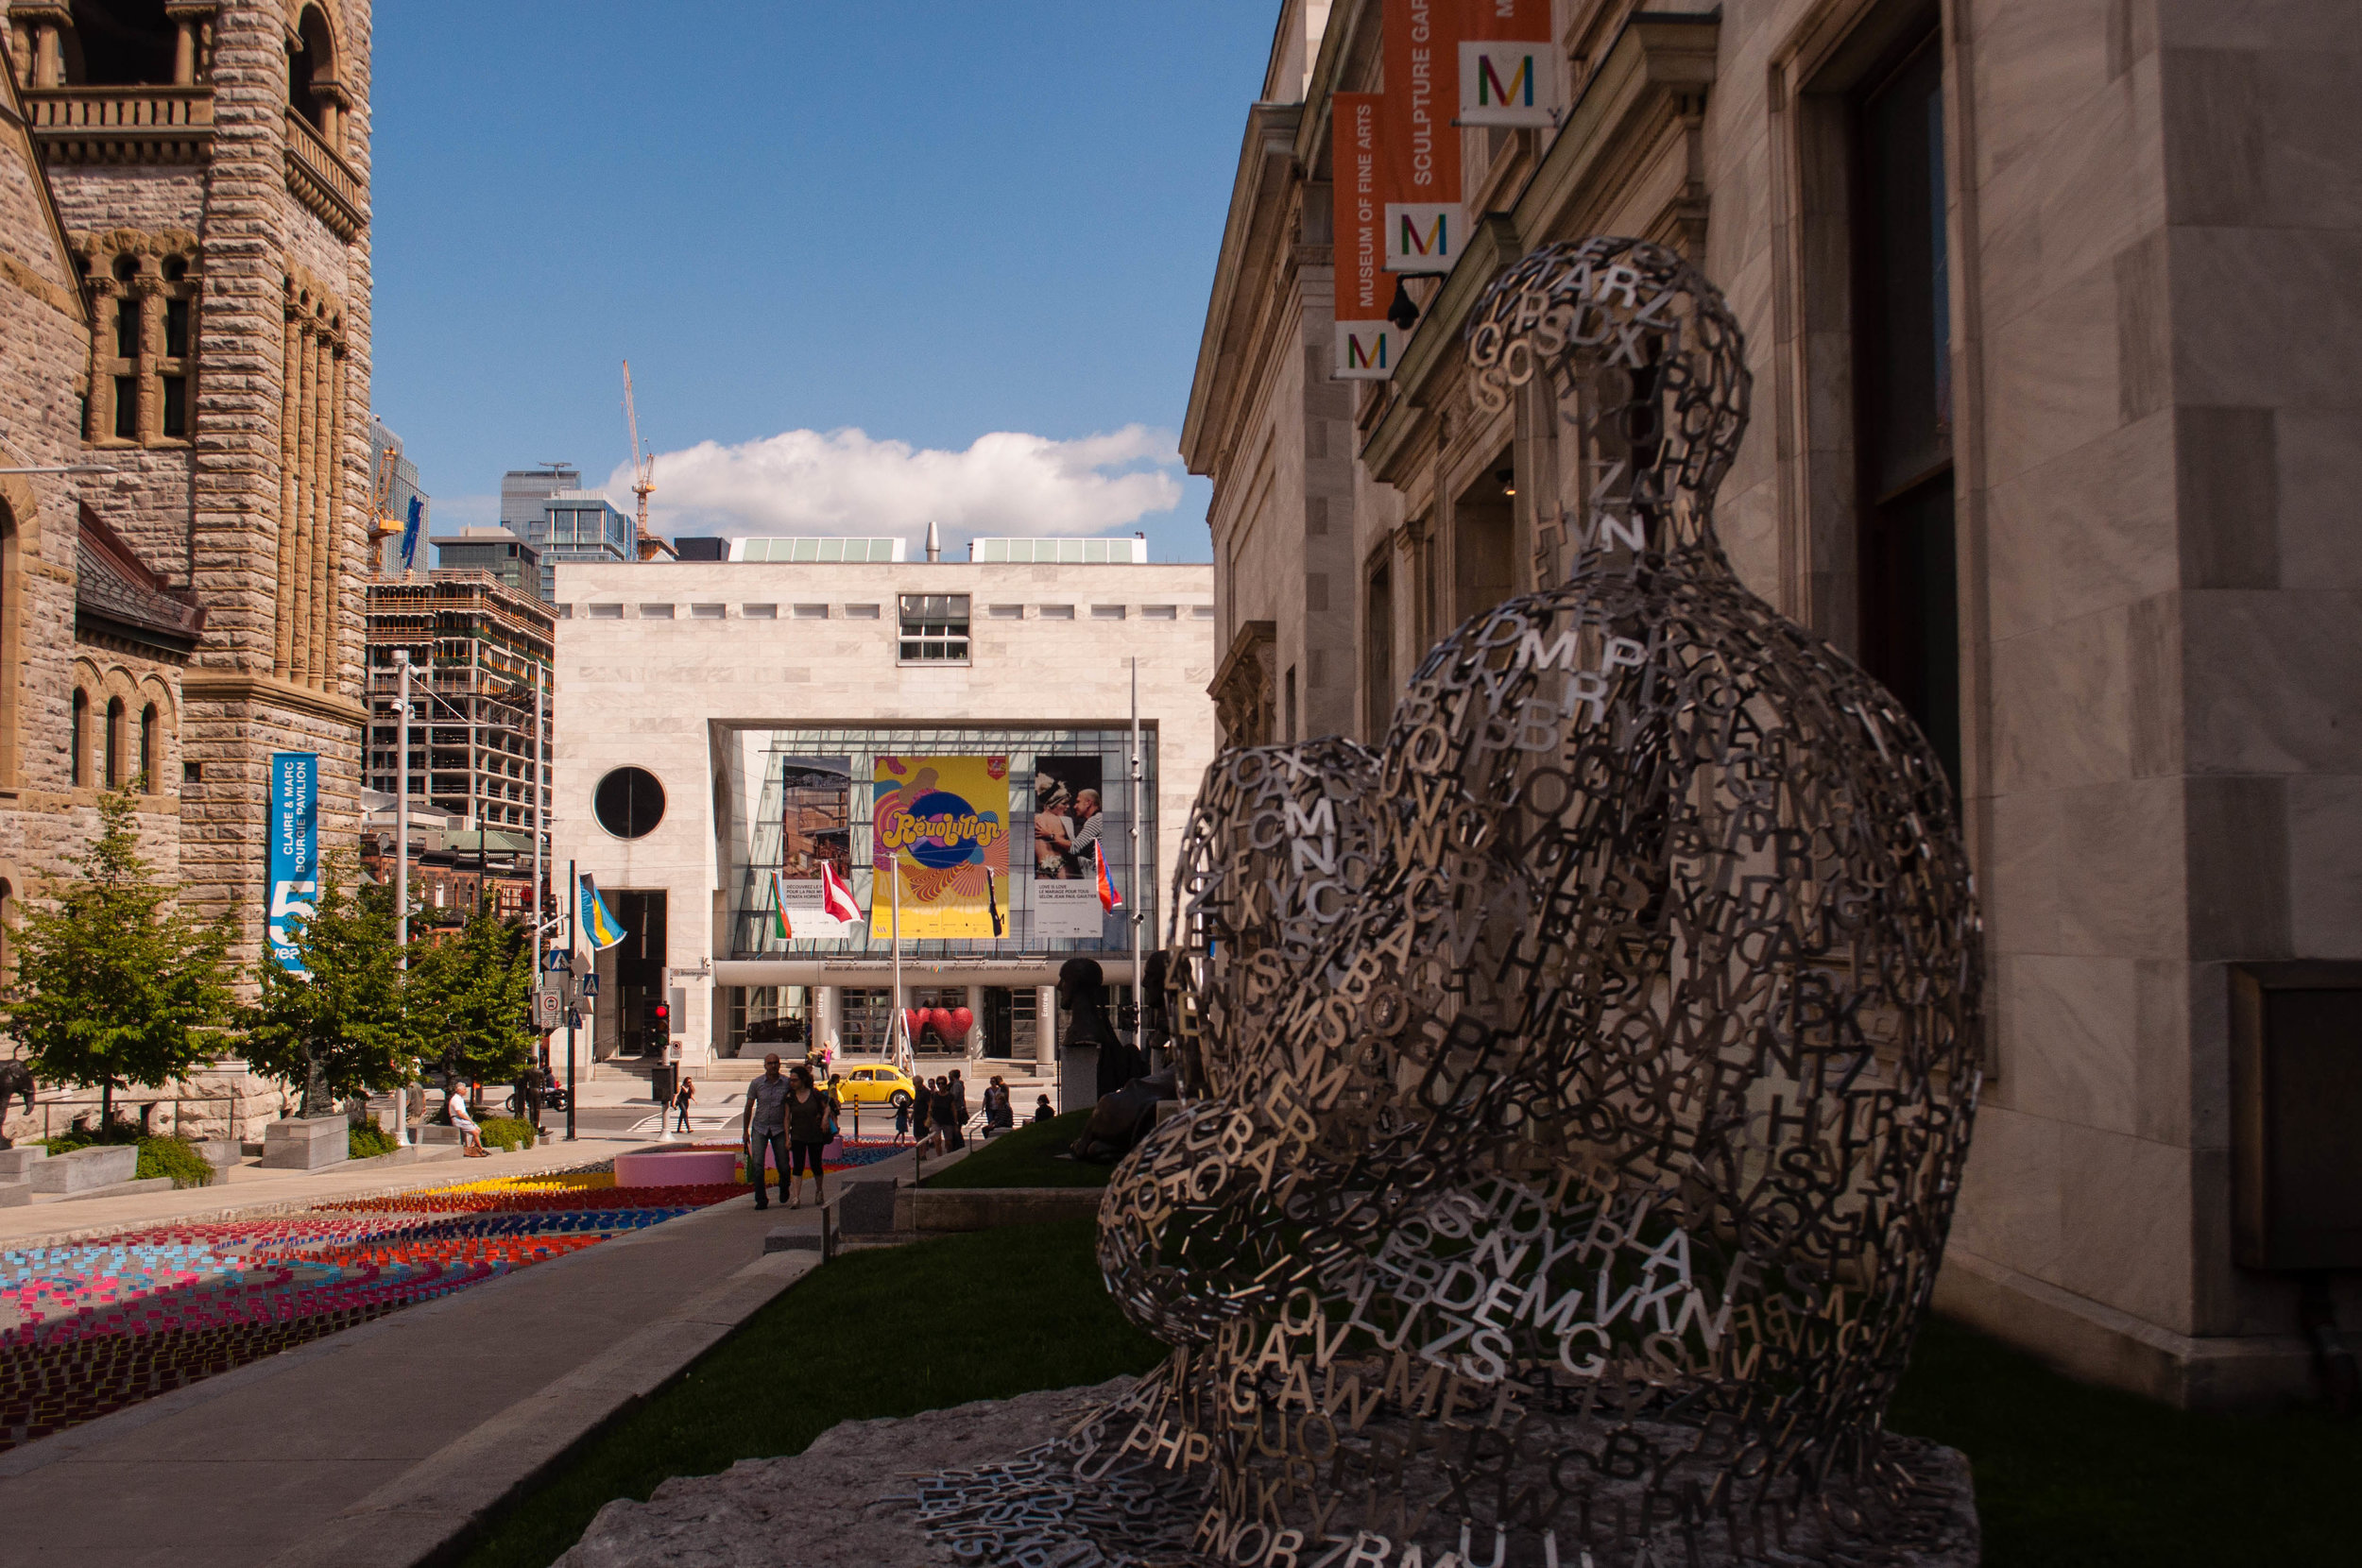 Quartier du musee alley in Montreal with the Fine art museum in the background and a sculpture in the foreground